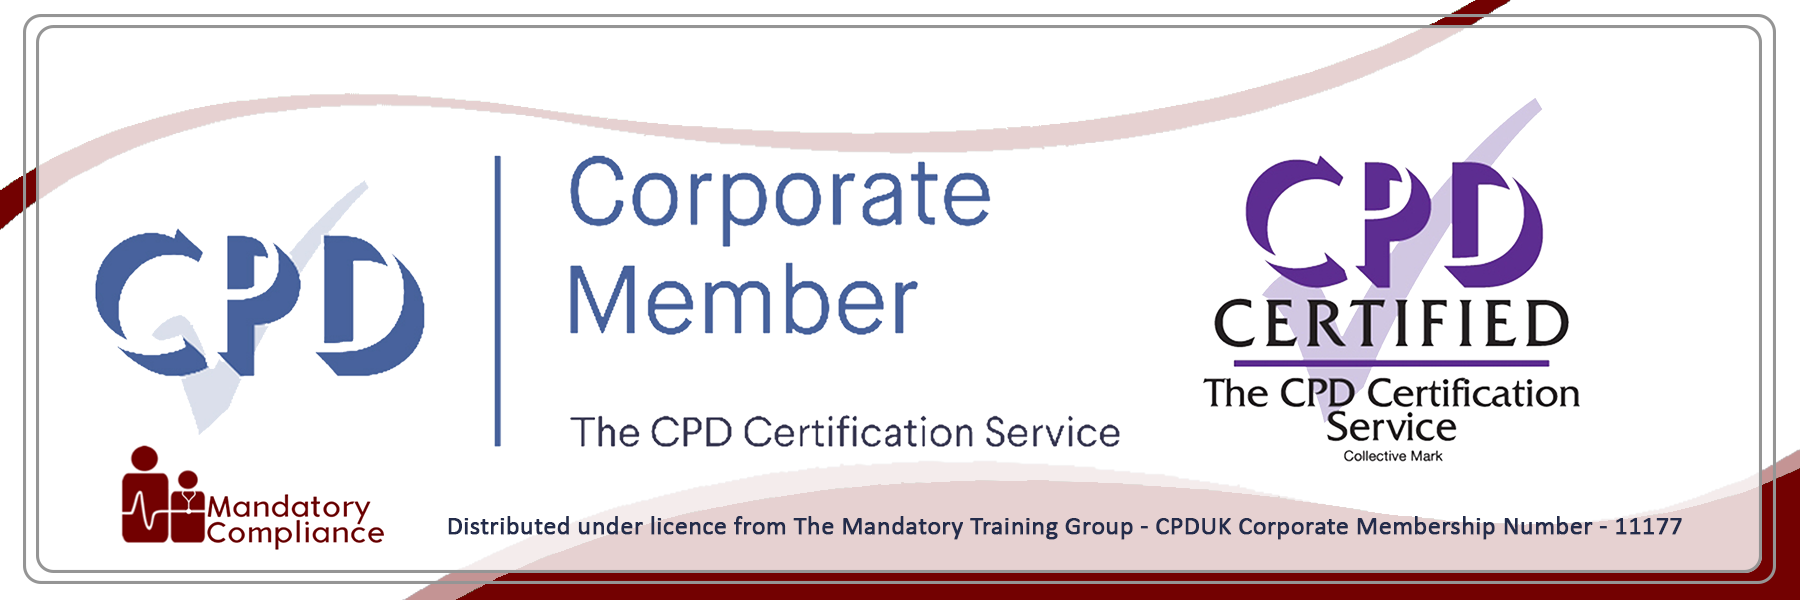 All in One Mandatory Training - 20 Online Courses - E-Learning Courses - Mandatory Compliance UK -